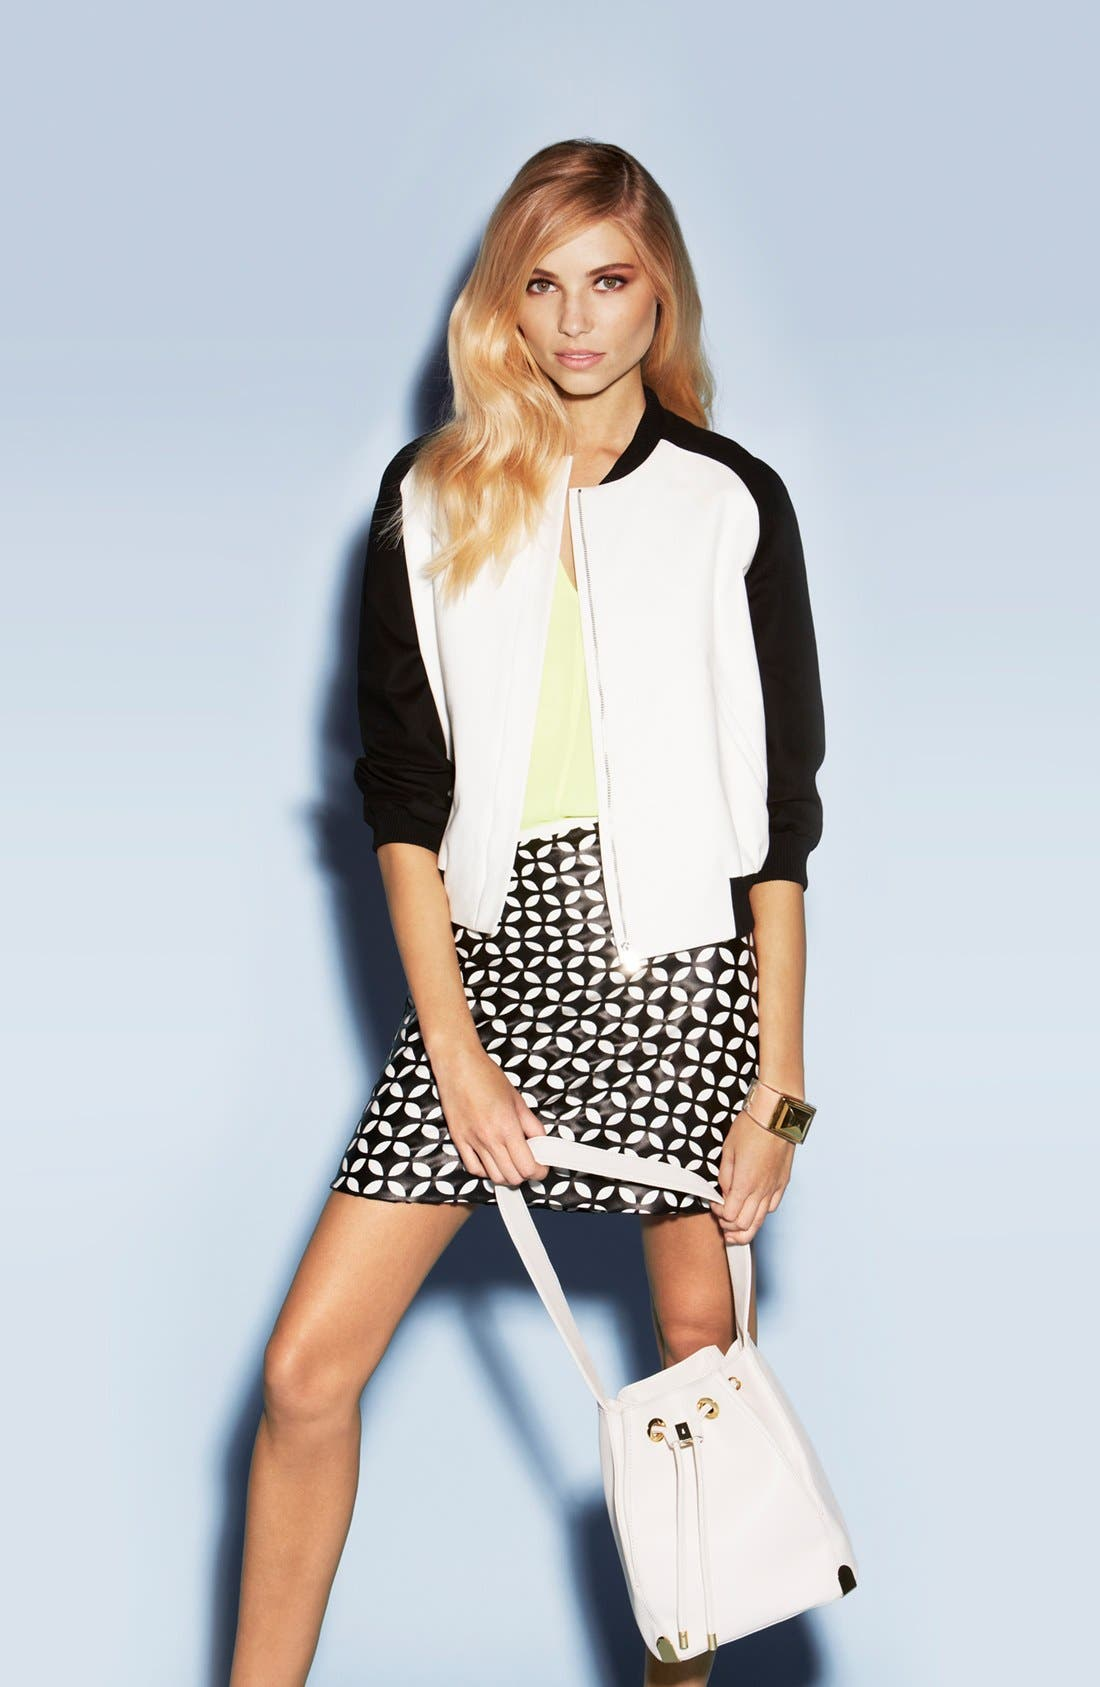 Alternate Image 1 Selected - Vince Camuto Jacket, Blouse, Skirt & Tote